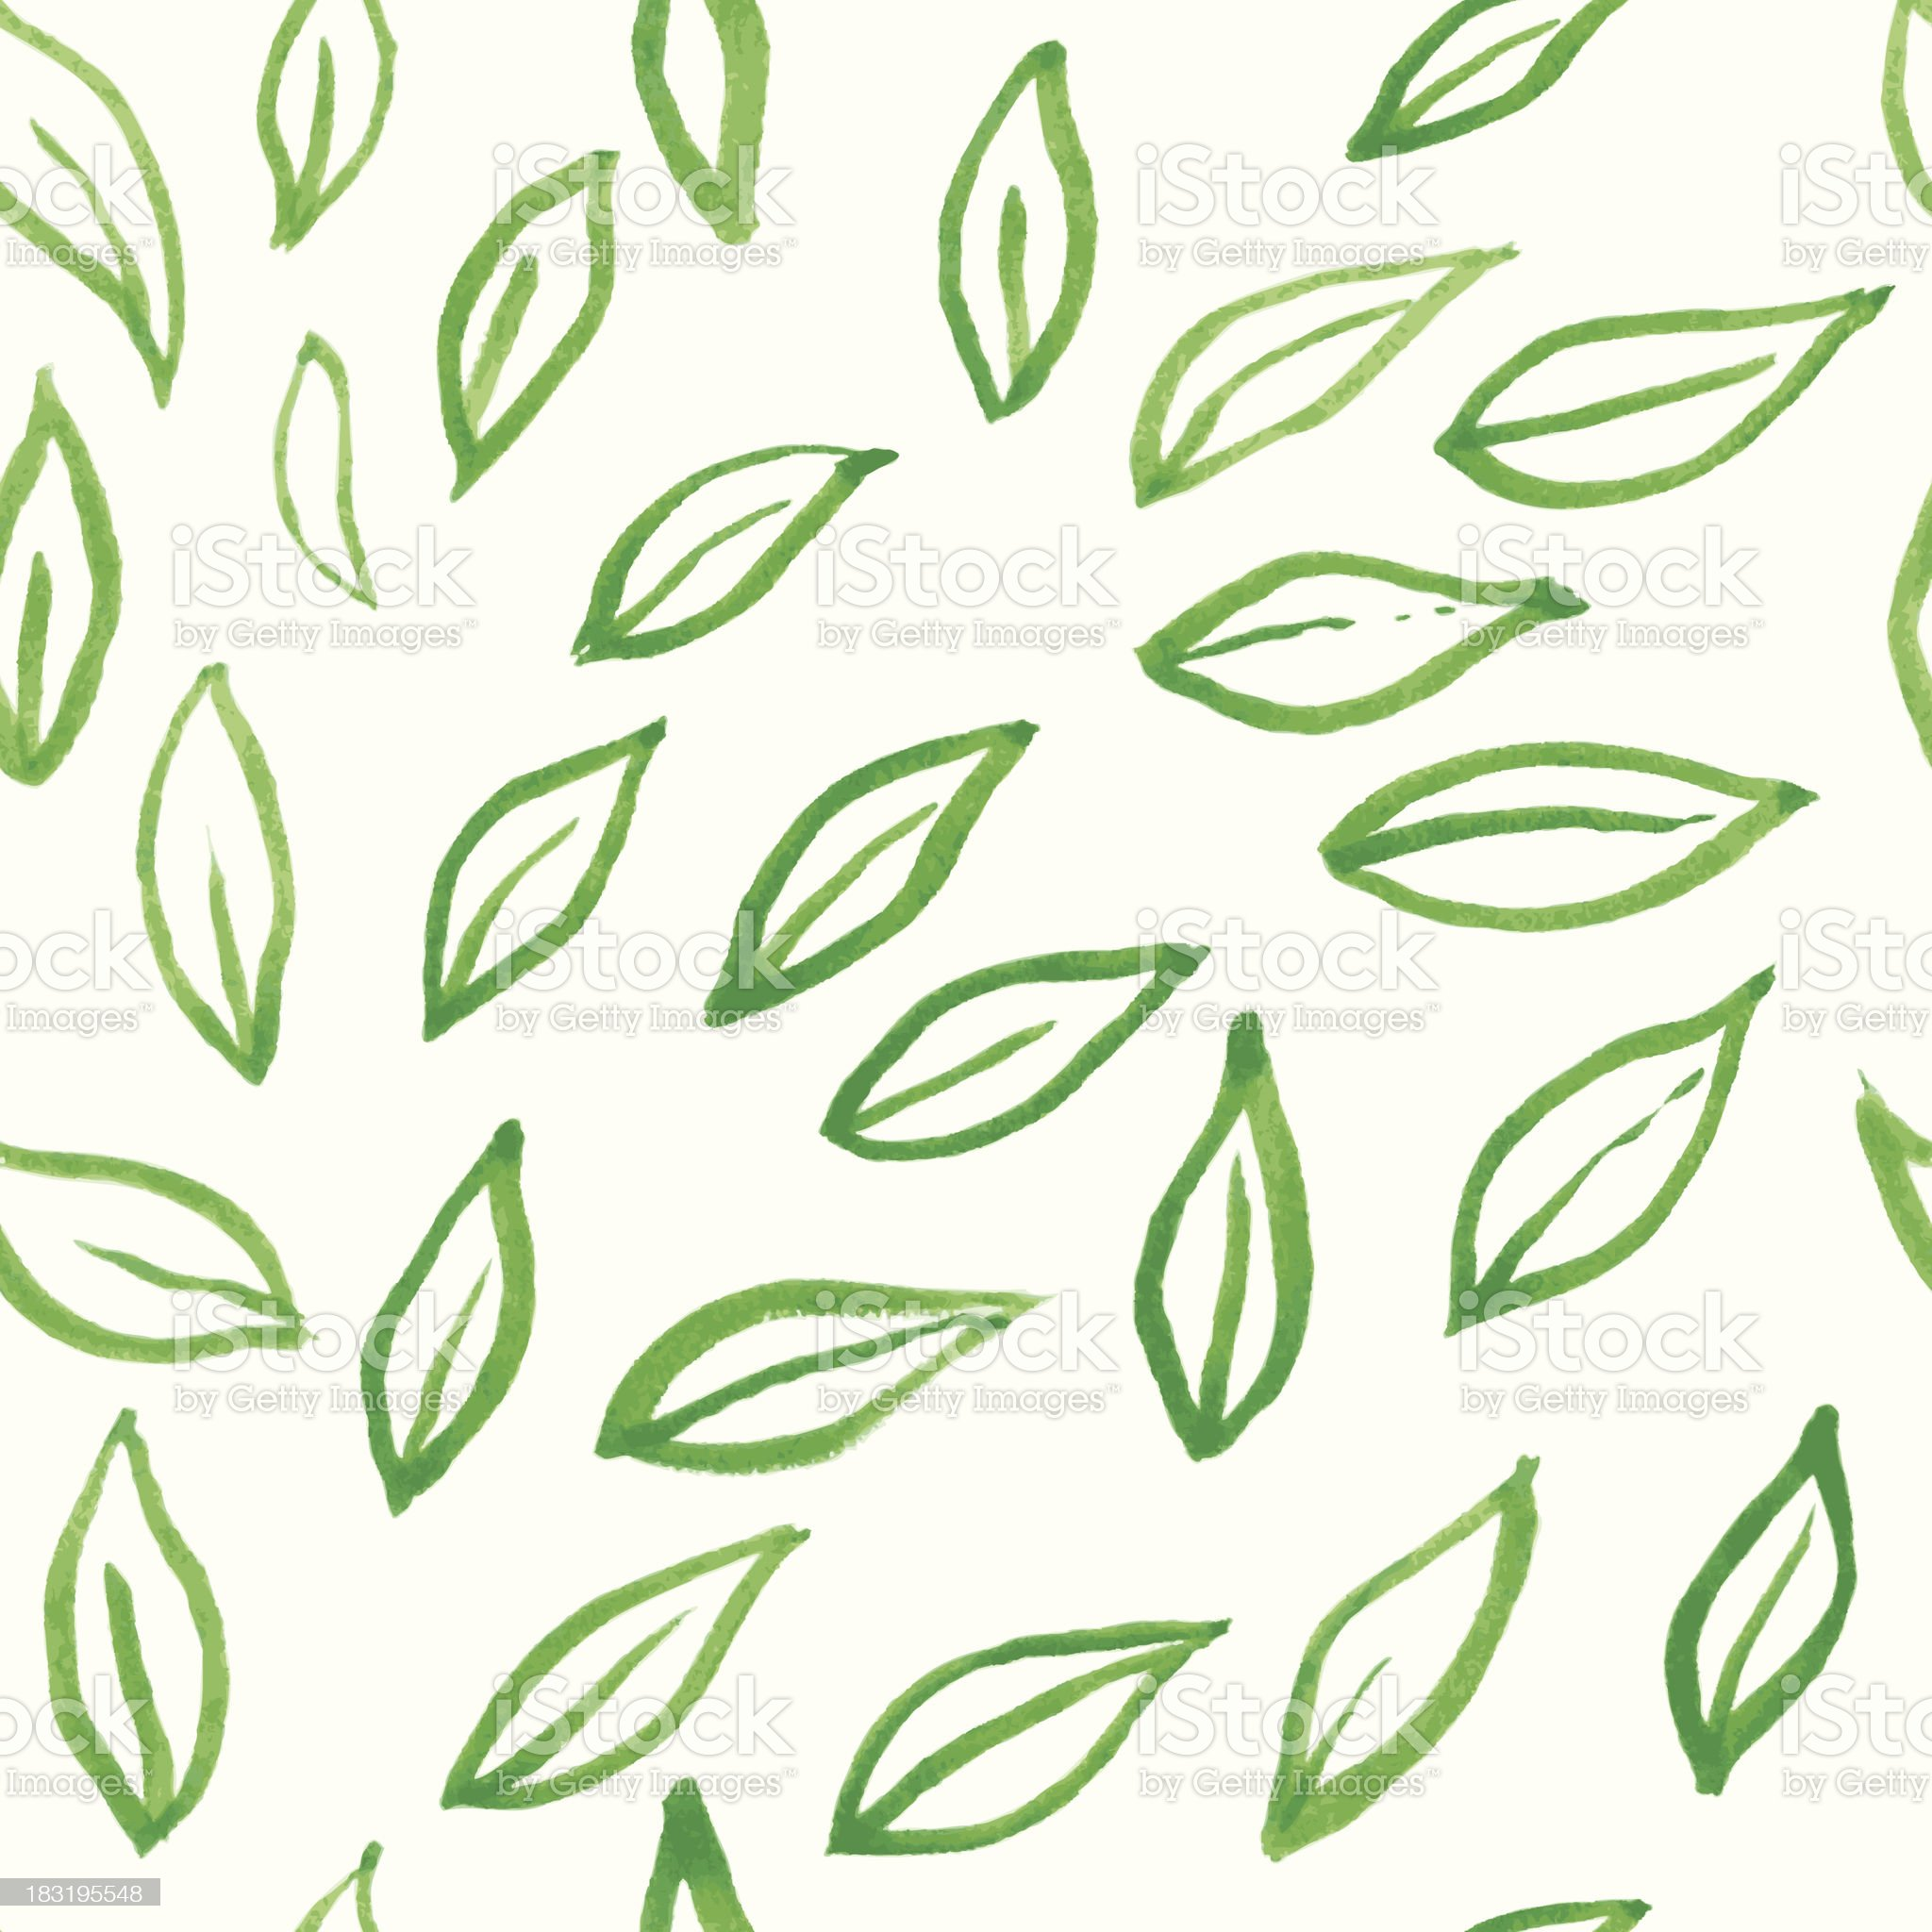 Leafs pattern royalty-free stock vector art